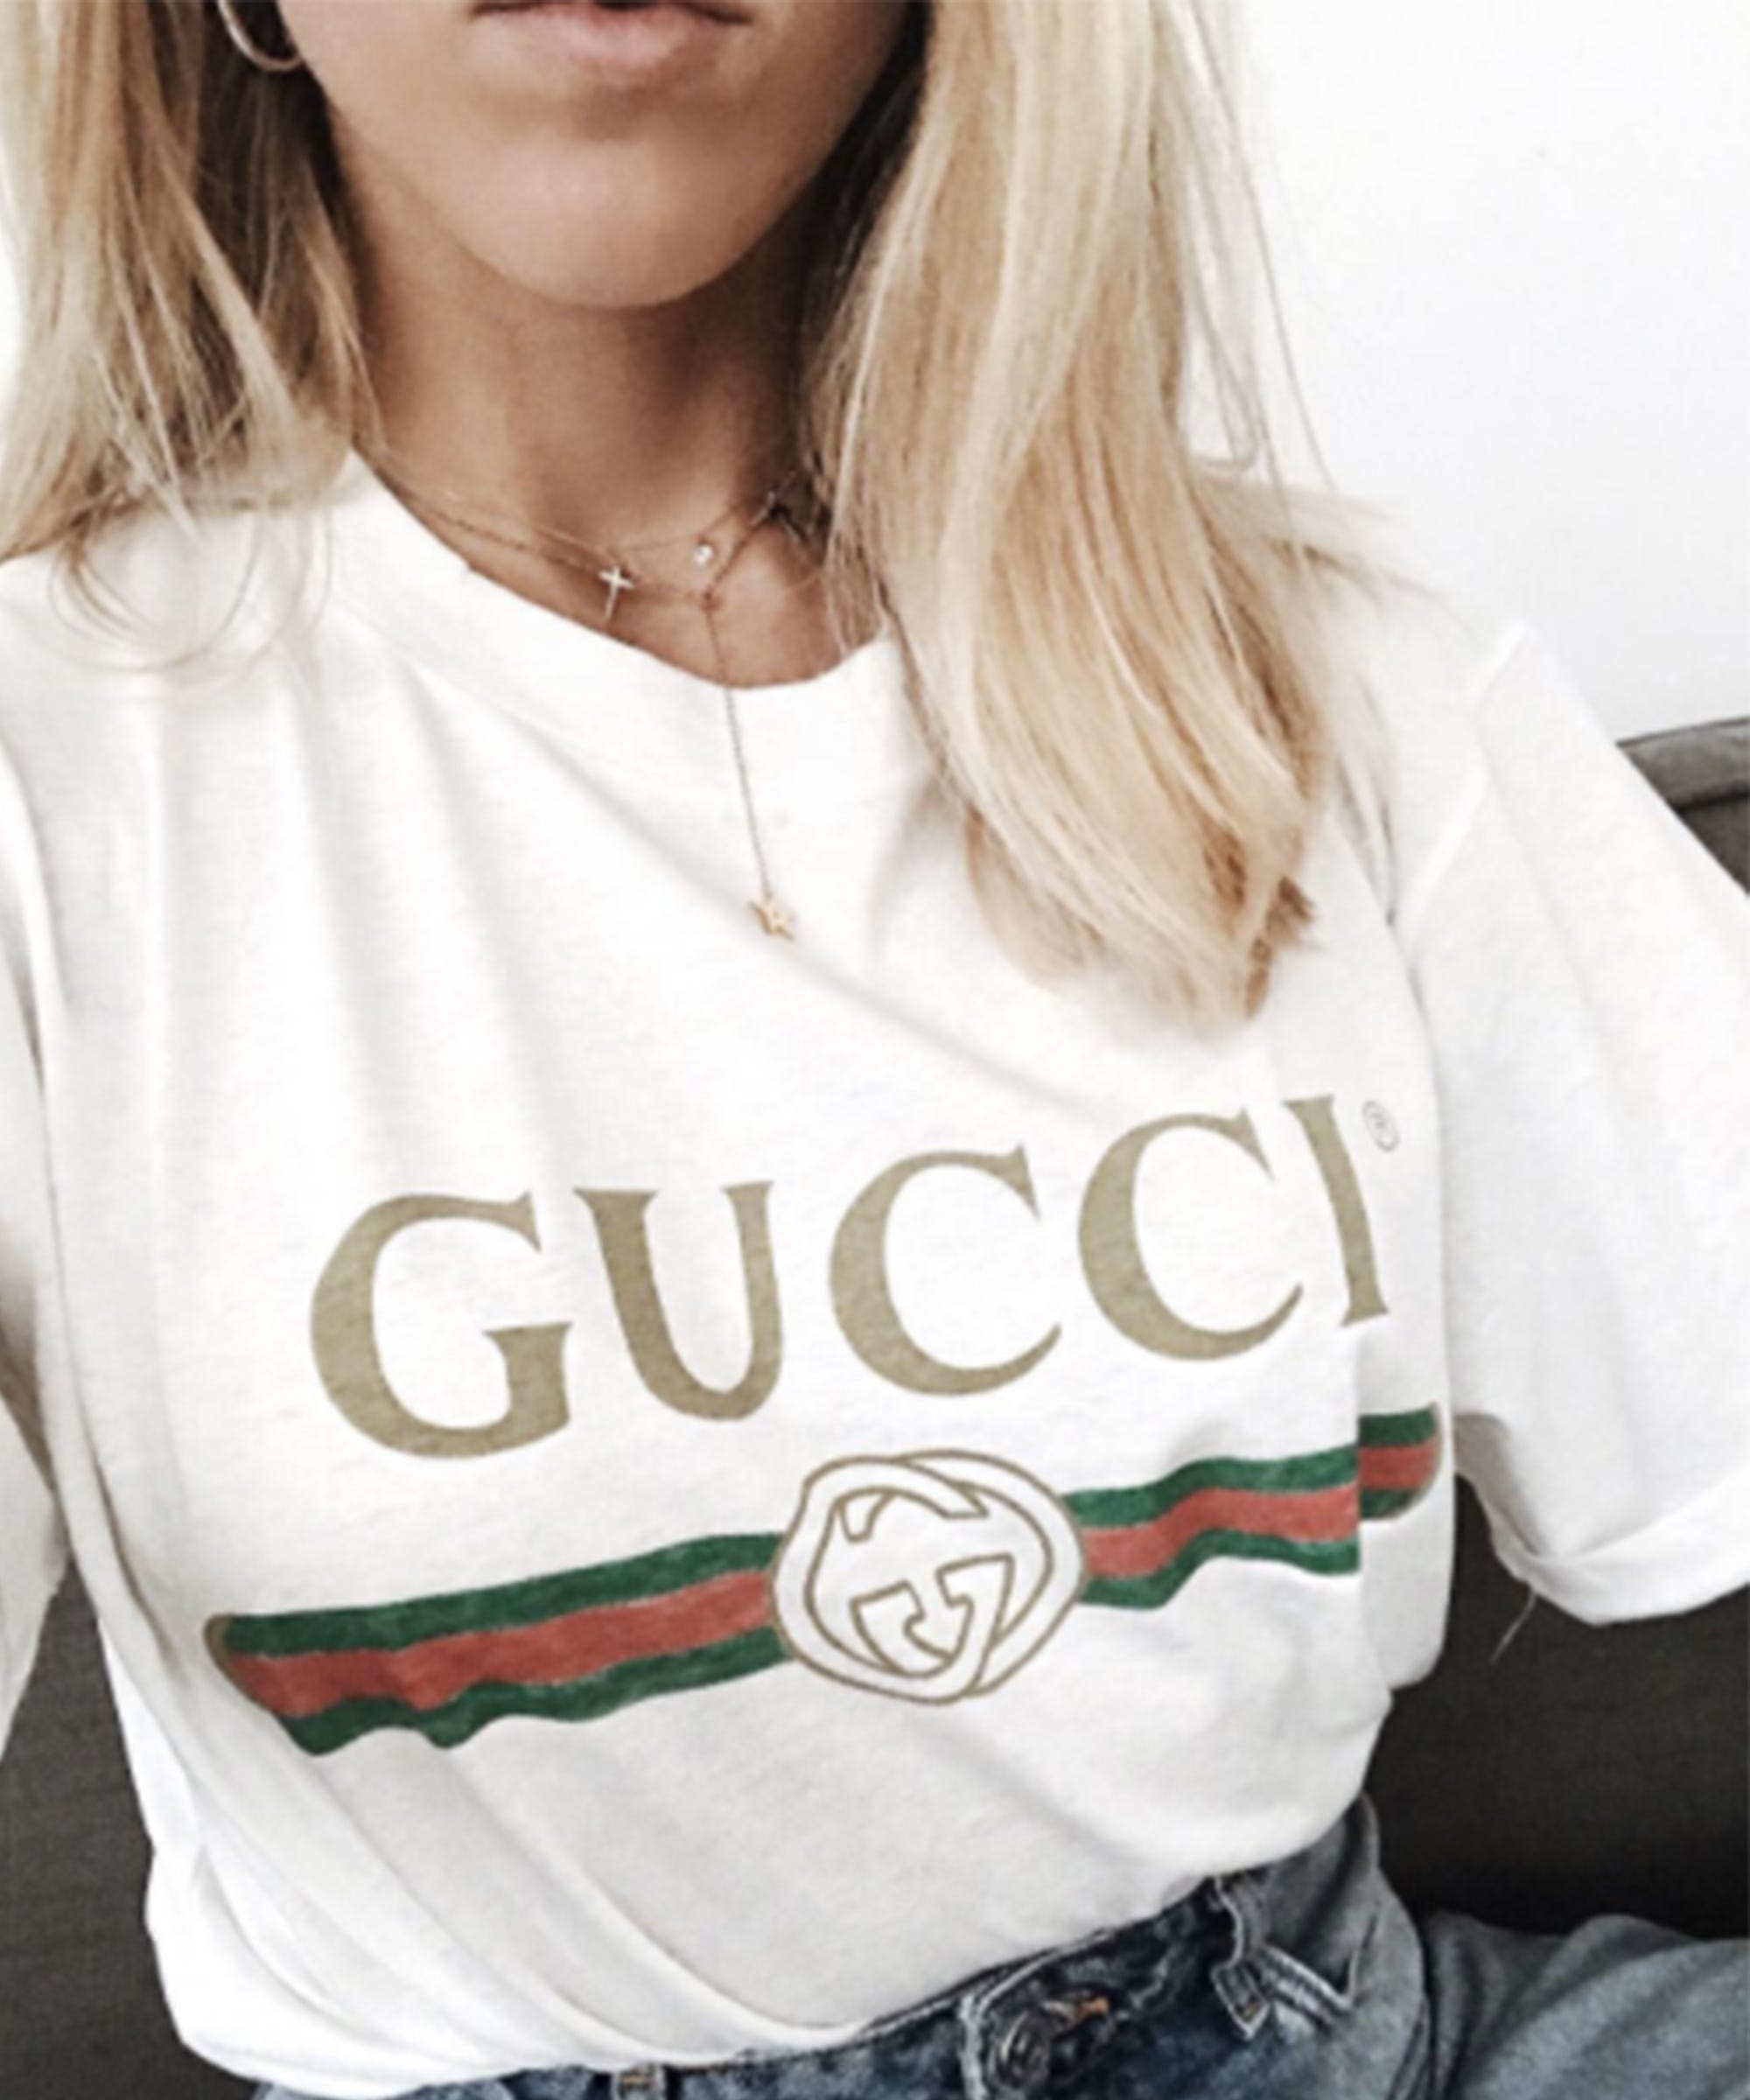 e85e9ace Gucci Logo T-Shirt Instagram Outfit Ideas